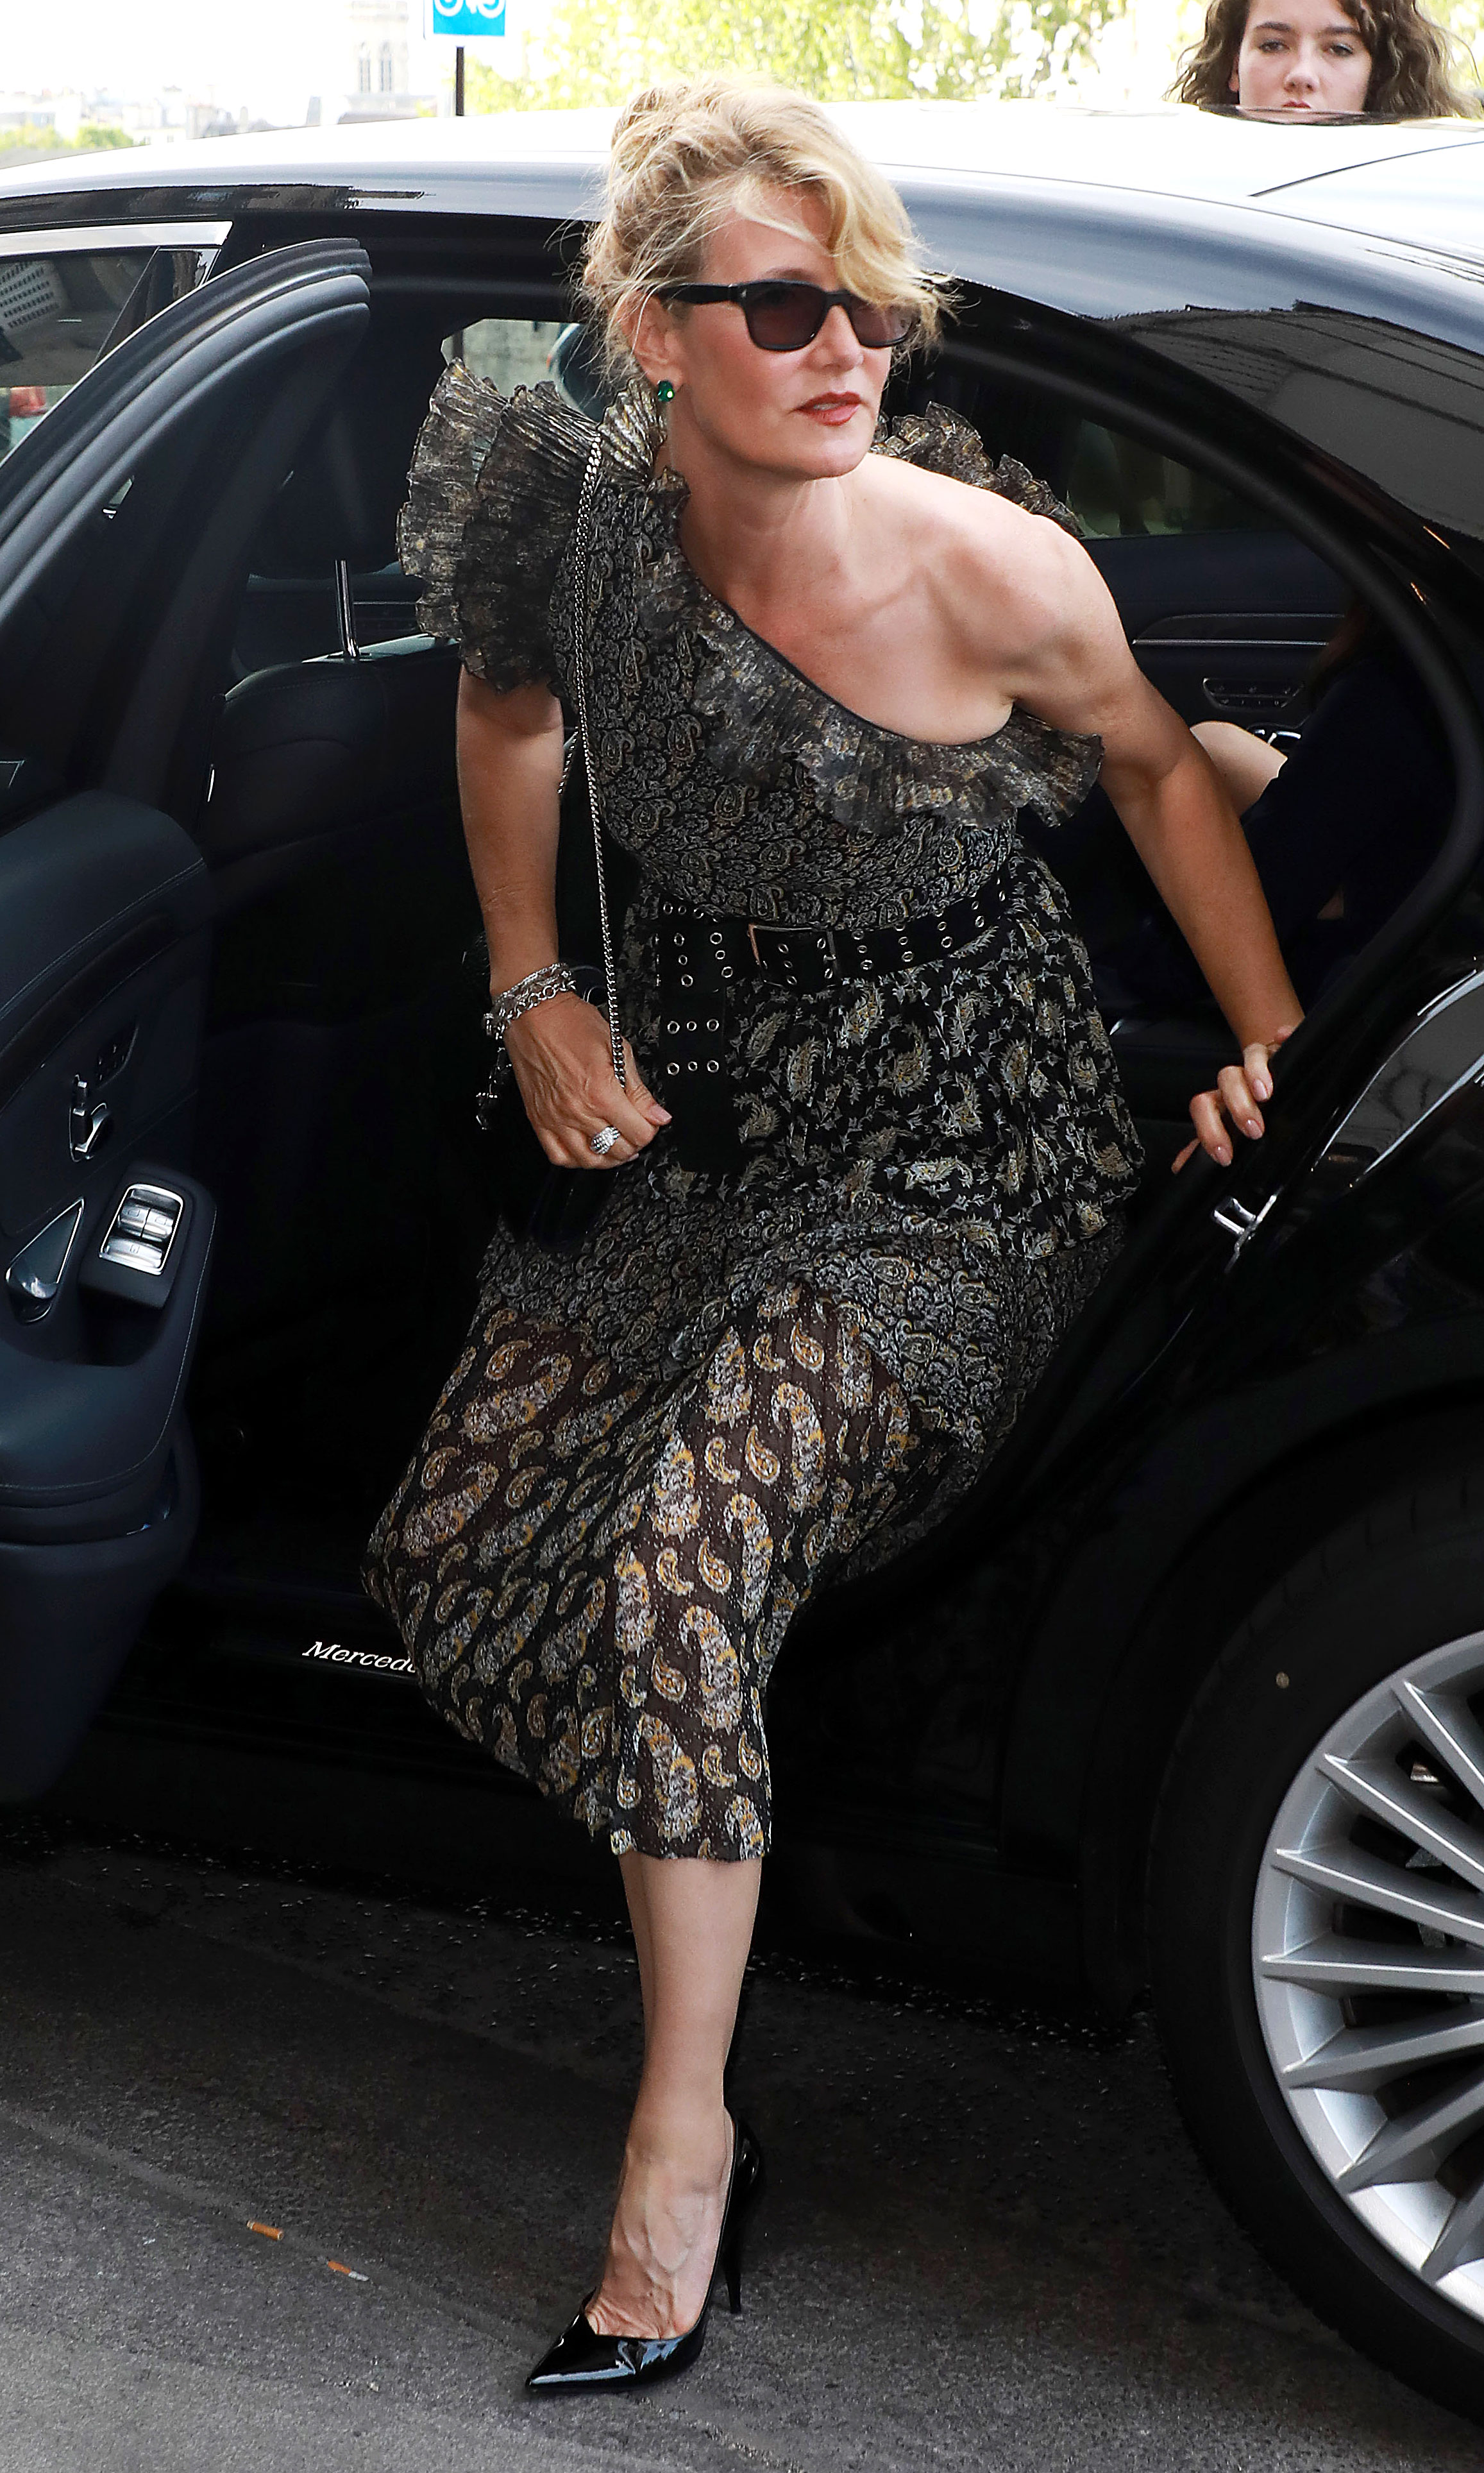 Zoe Kravitz Karl Glusman attend pre-wedding party French restaurant Lapérous Paris - Dern was glamorous as could be while exiting her car in an asymmetrical, single-sleeve cocktail dress to join in on the festivities.